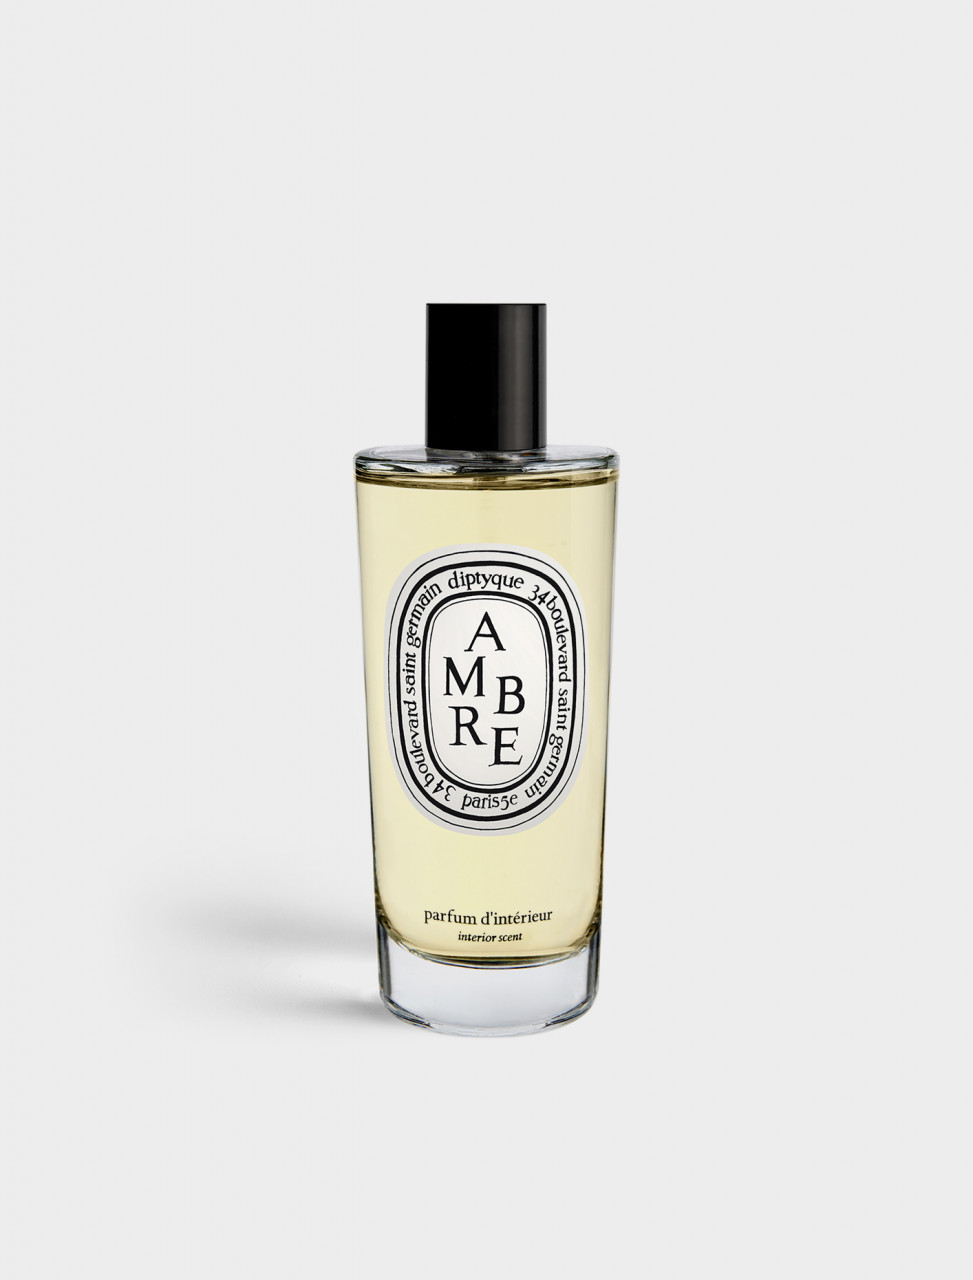 337-VAB DIPTYQUE AMBRE ROOM SPRAY